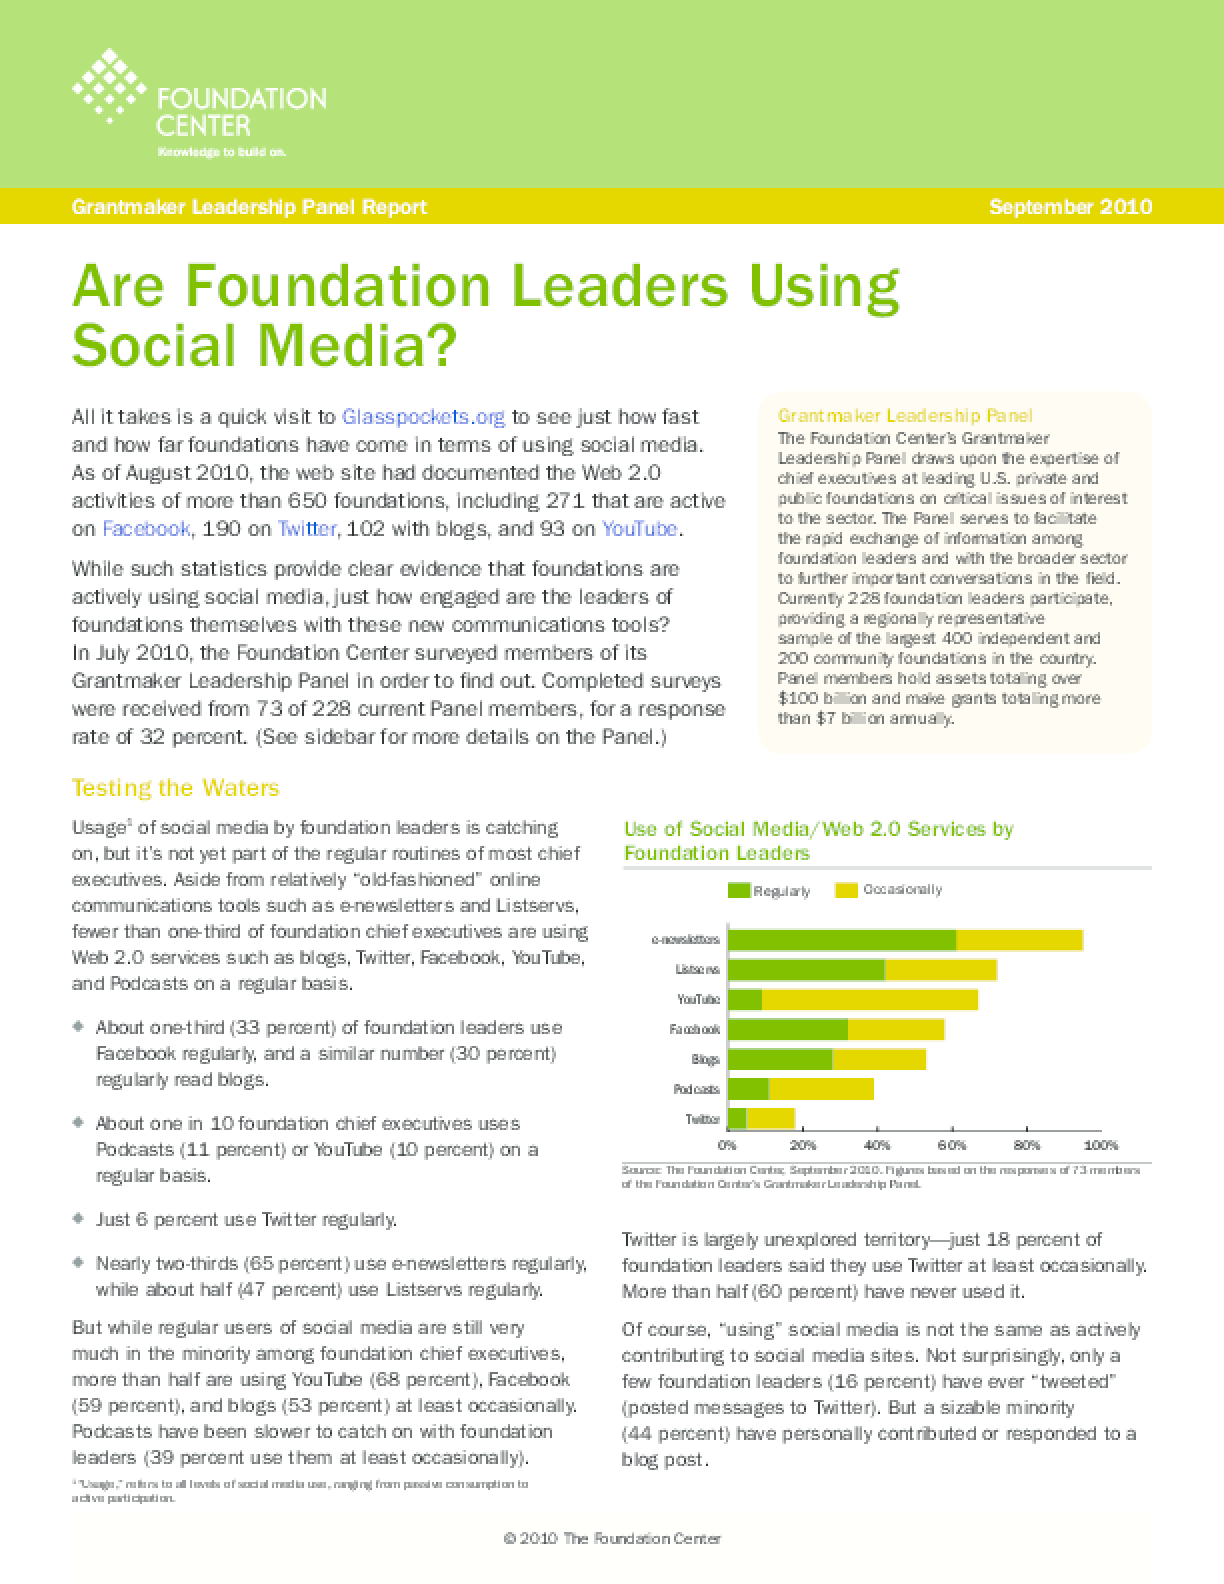 Are Foundation Leaders Using Social Media?